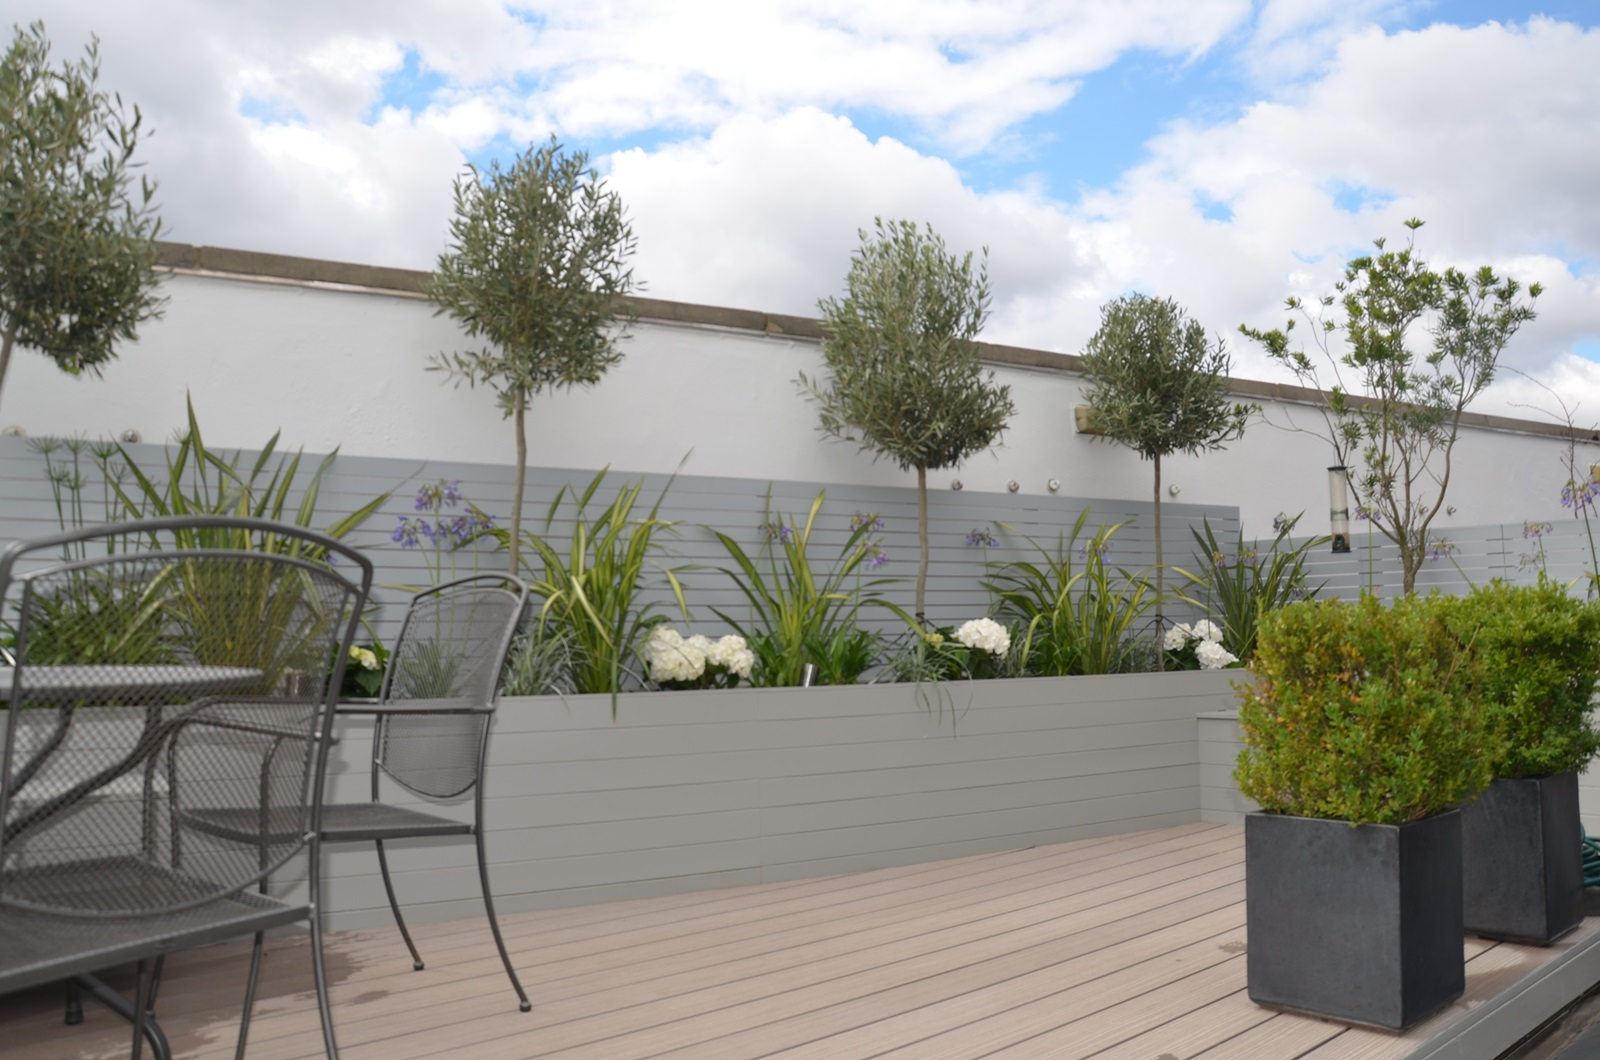 Tower bridge modern garden design roof penthouse terrace docklands london london garden blog - Garden ideas london ...